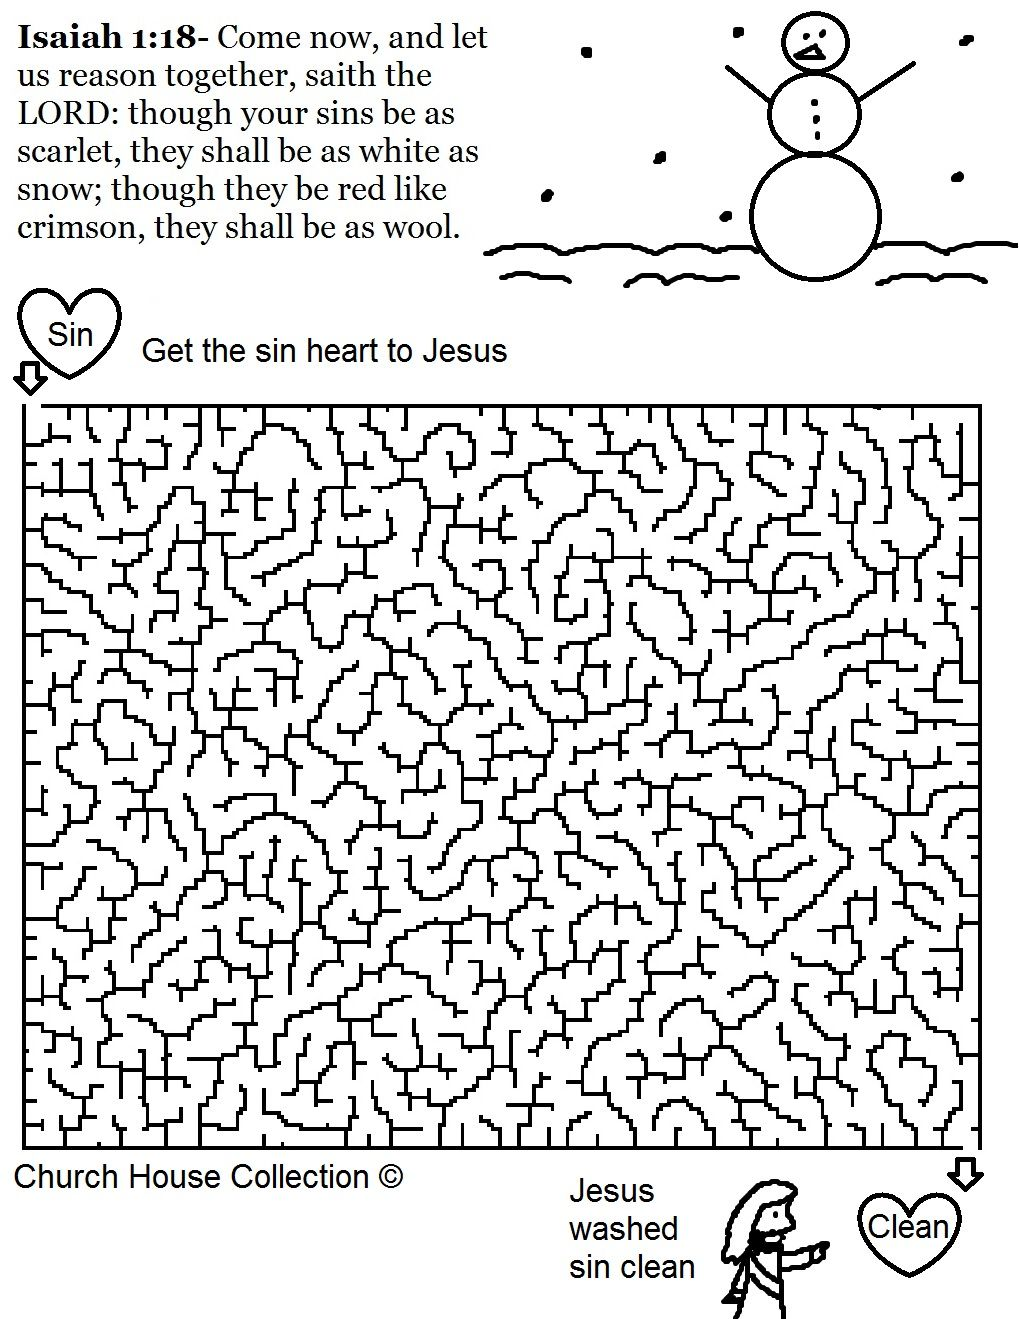 free christmas snowman isaiah 1 18 printable maze template for